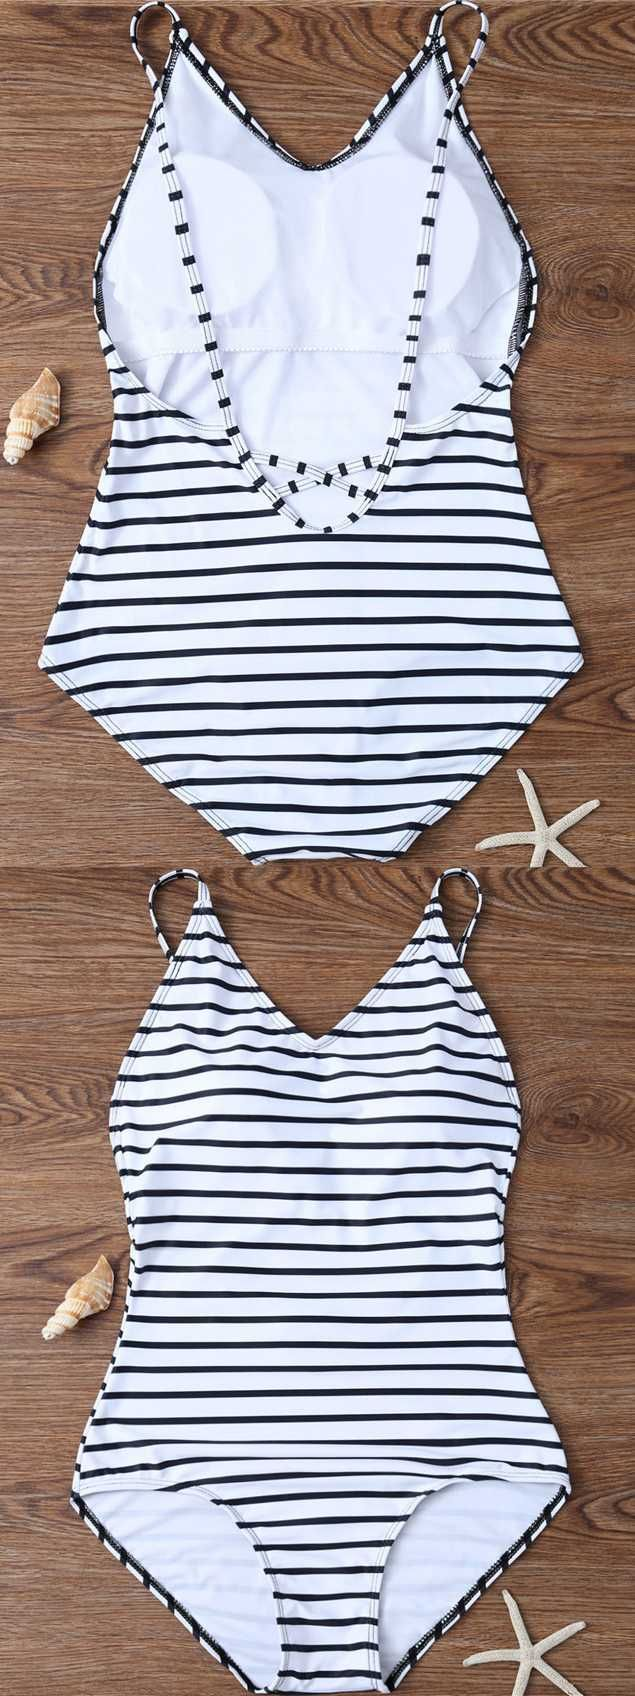 swimsuit one piece modest monokini curvy swimwear slimming summer beach outfits striped bikini stripes trikini black and white bathing suit. Save up to 30% OFF Sitewide by code SUMMER20%OFF